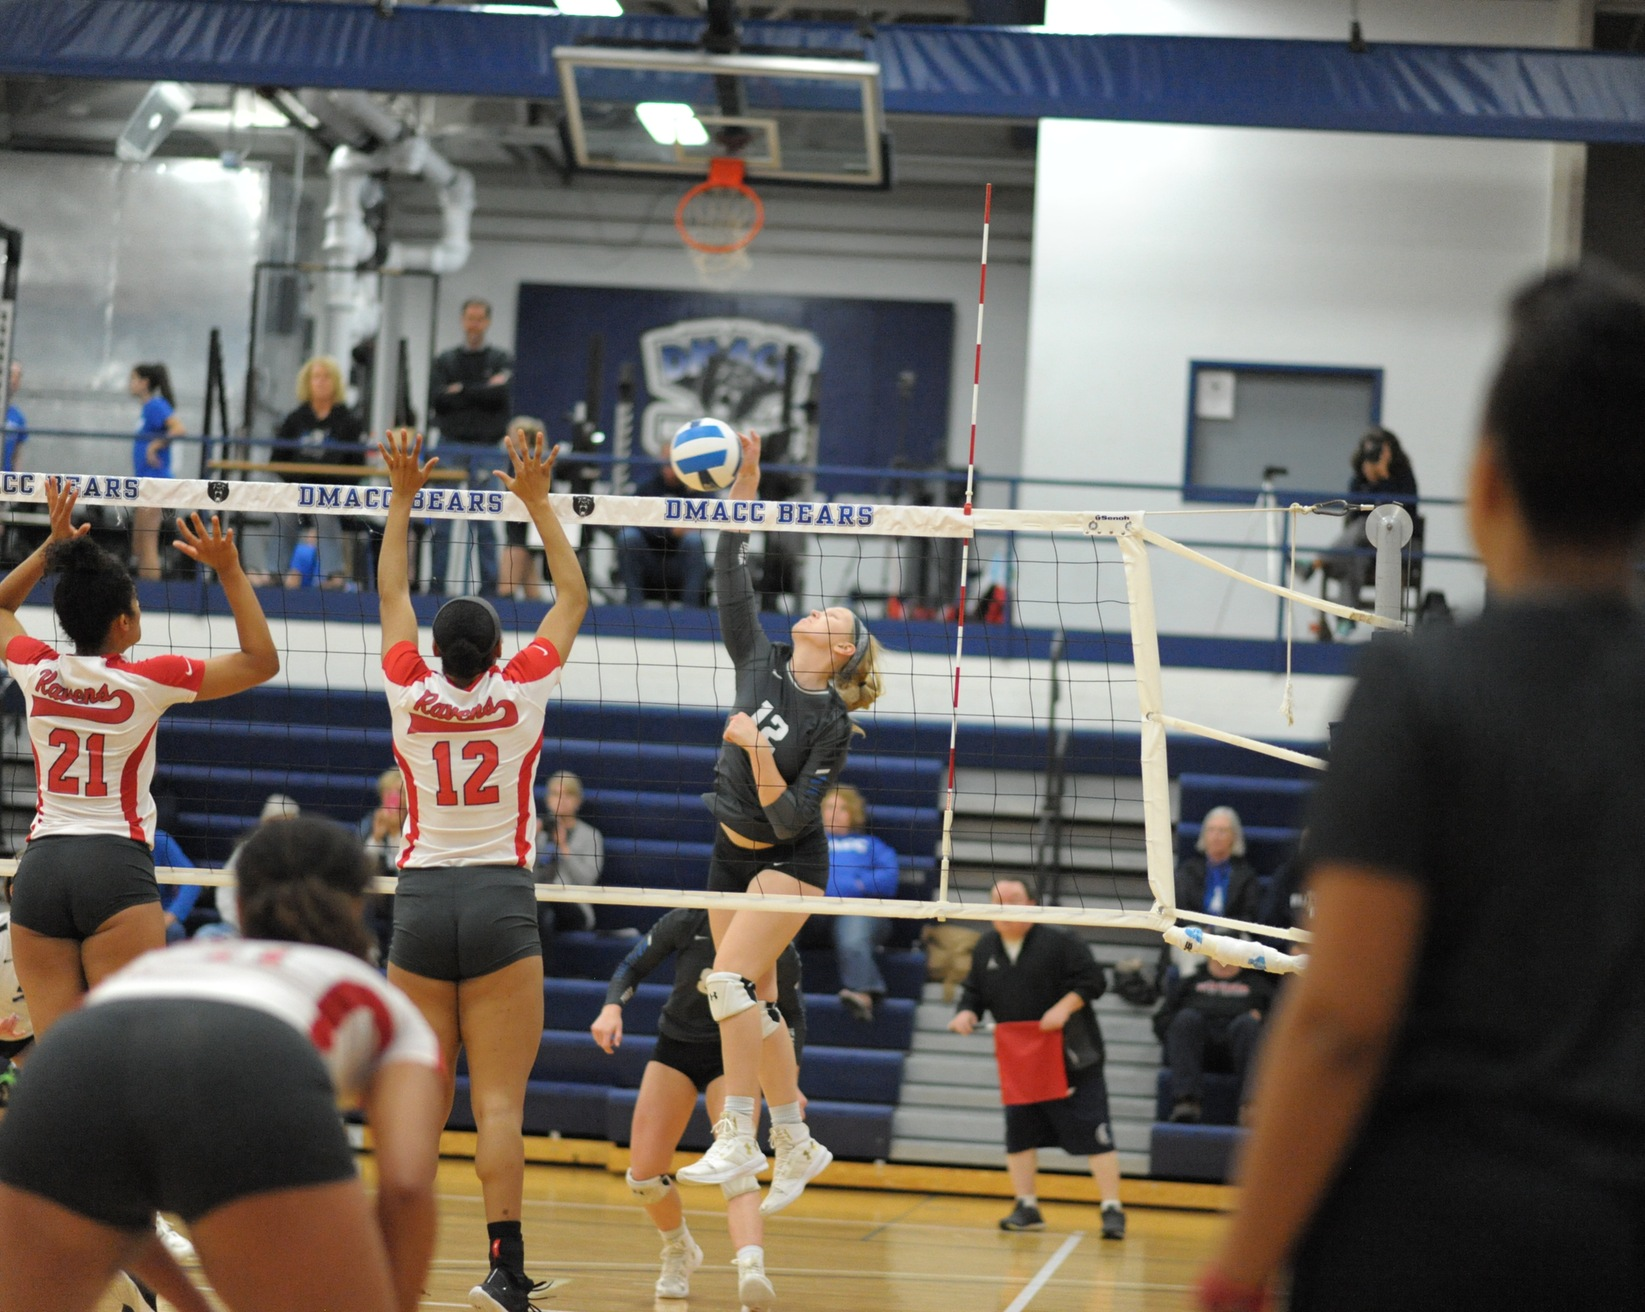 DMACC Volleyball Team Drops Three of Four Matches in DMACC Invitational